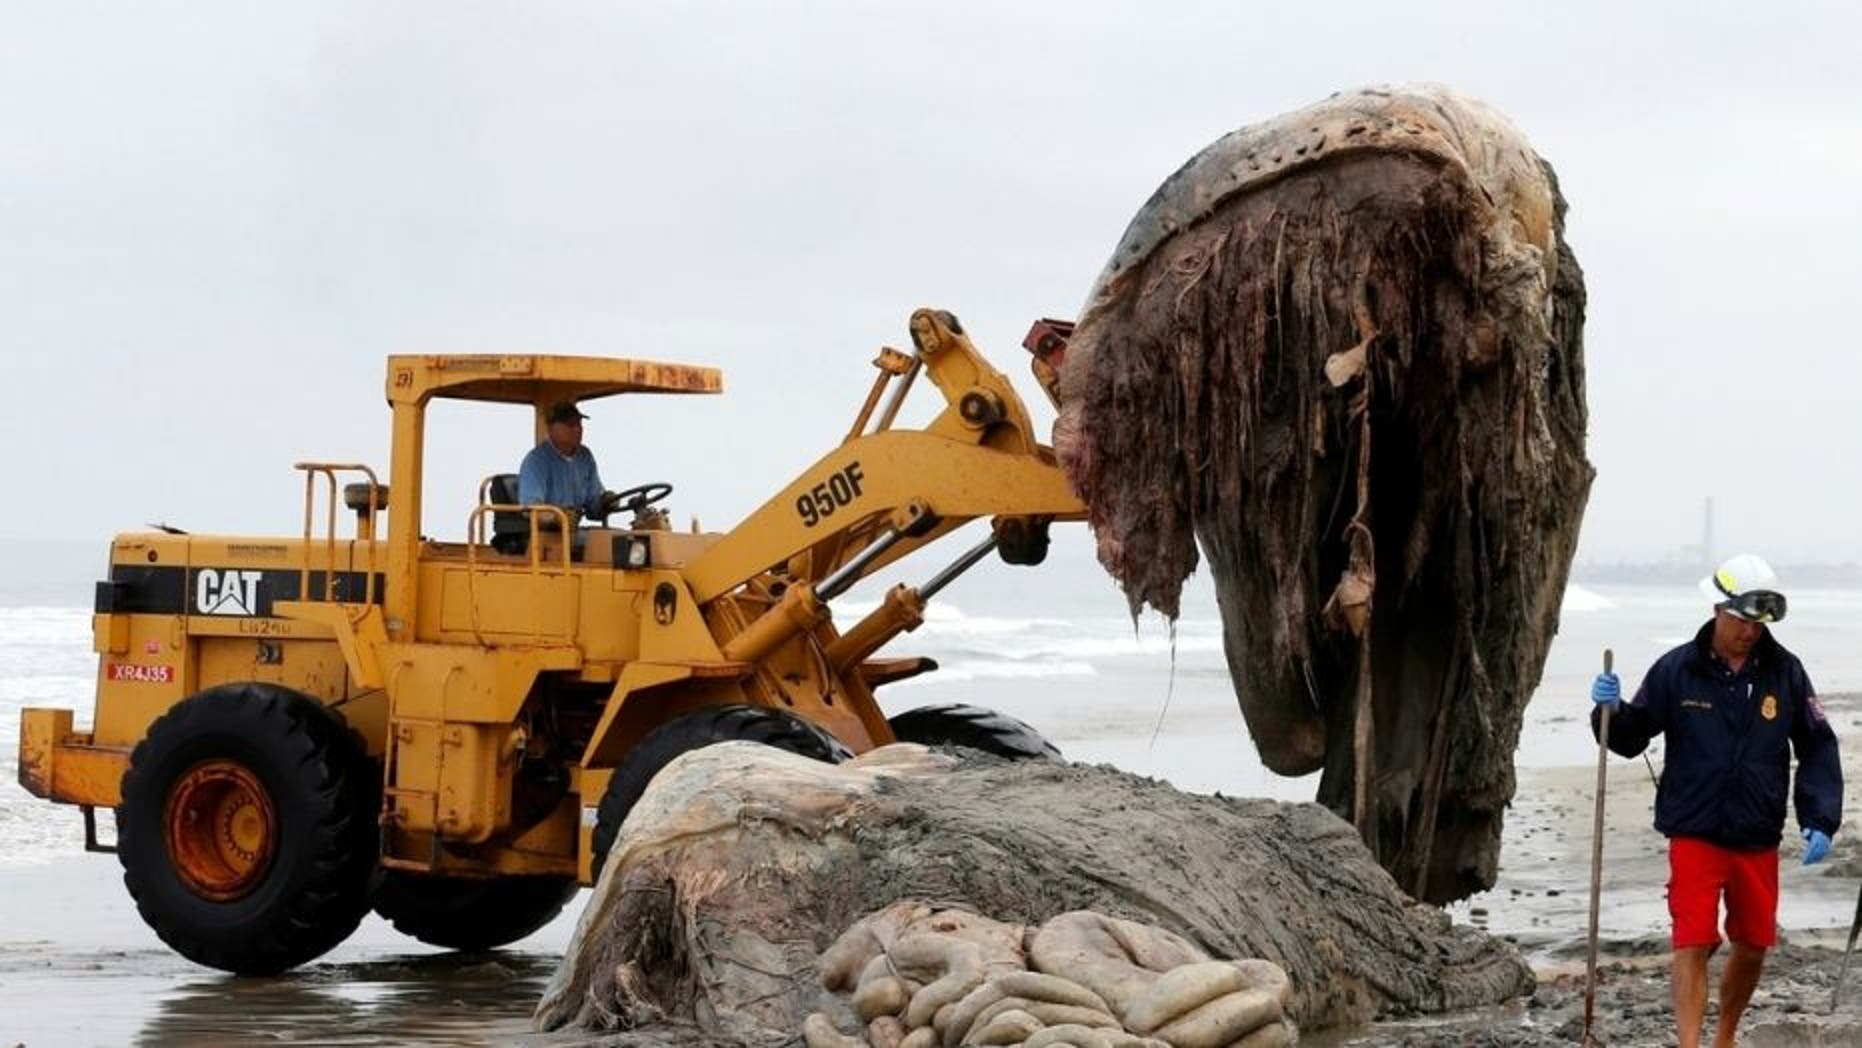 Several giant, hairy creatures have washed up in recent years.